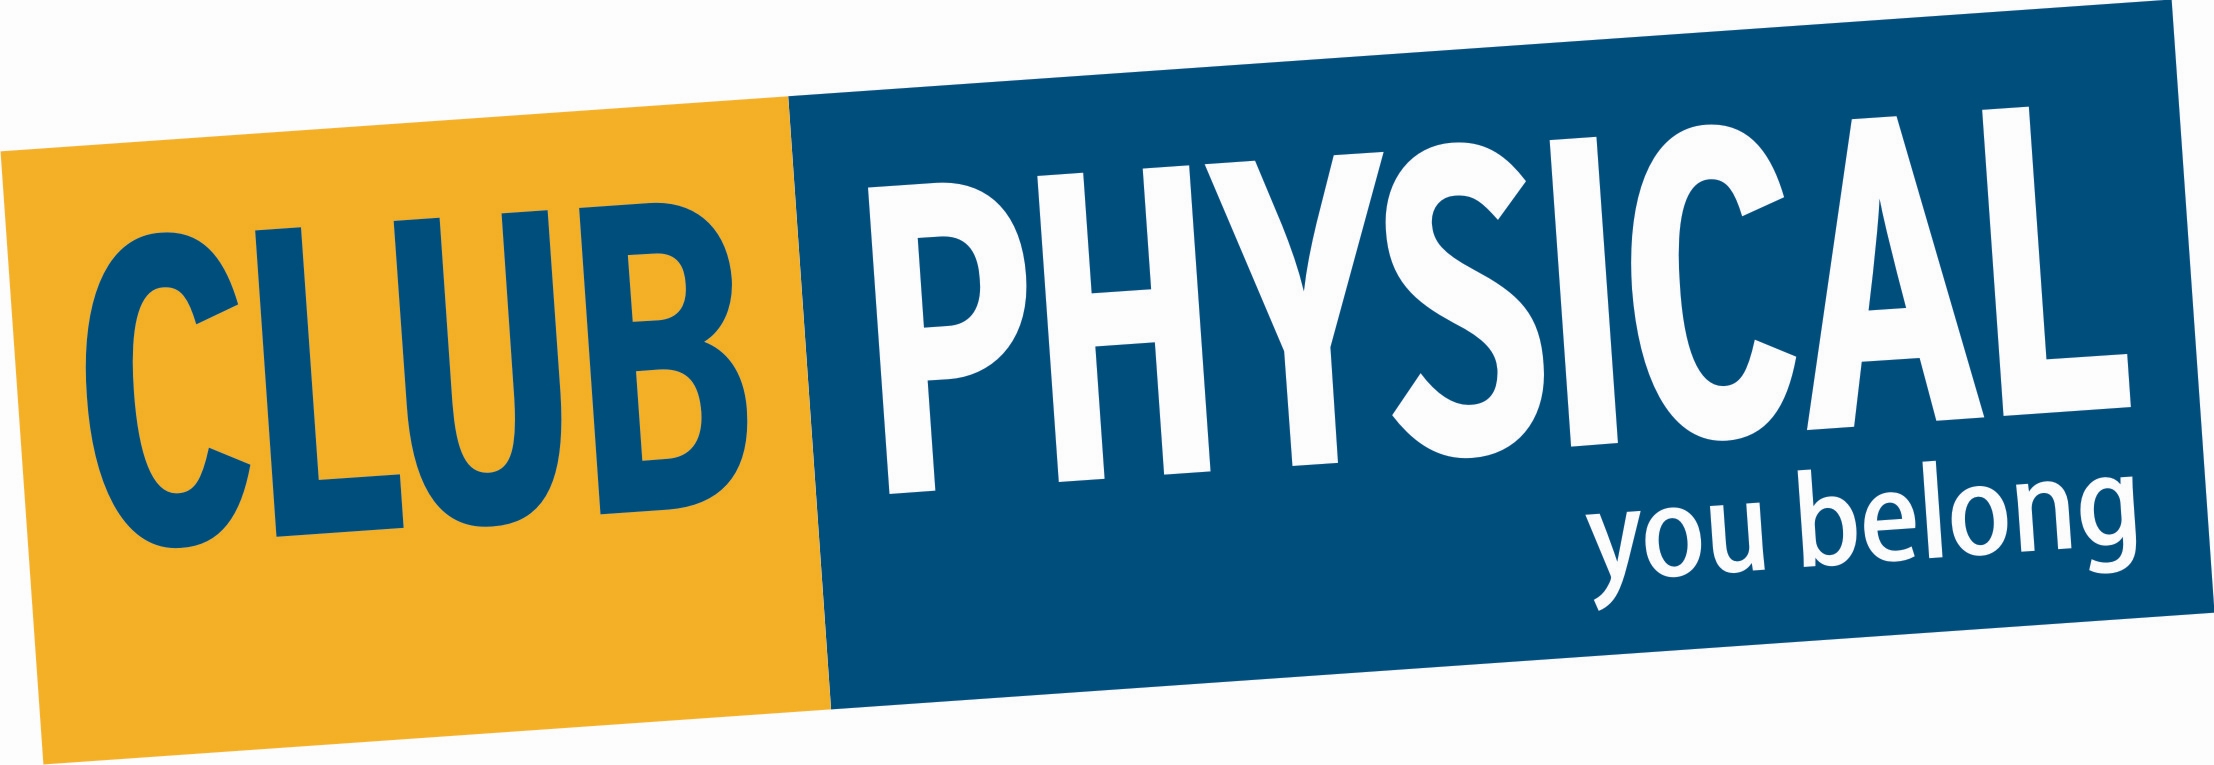 club physical logo